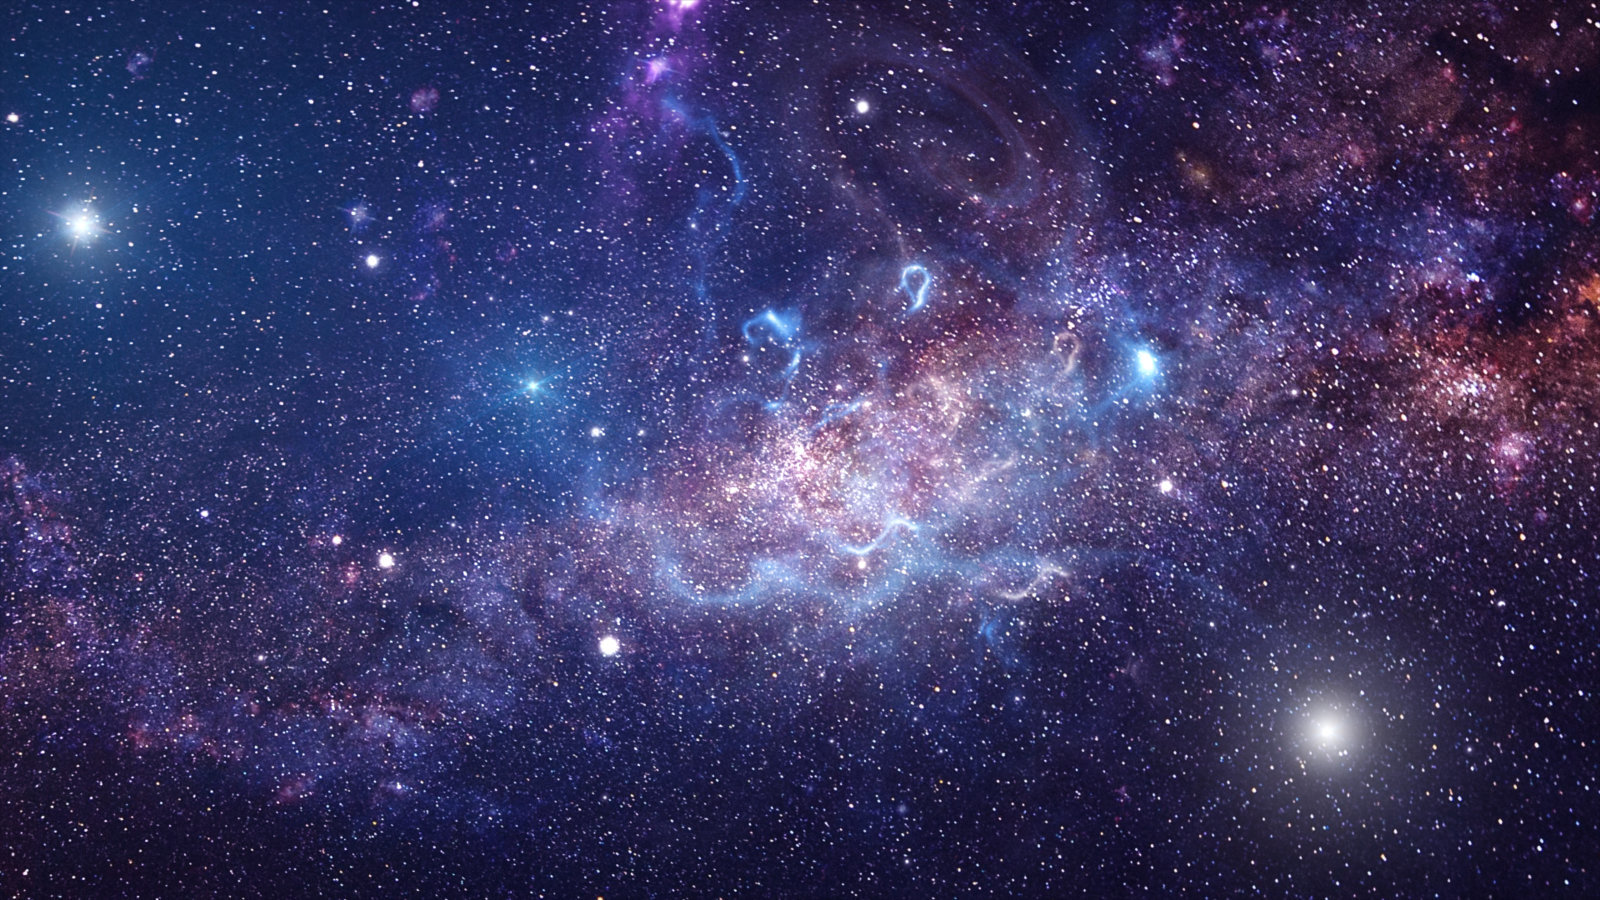 Cute Galaxy wallpaper For Your Child